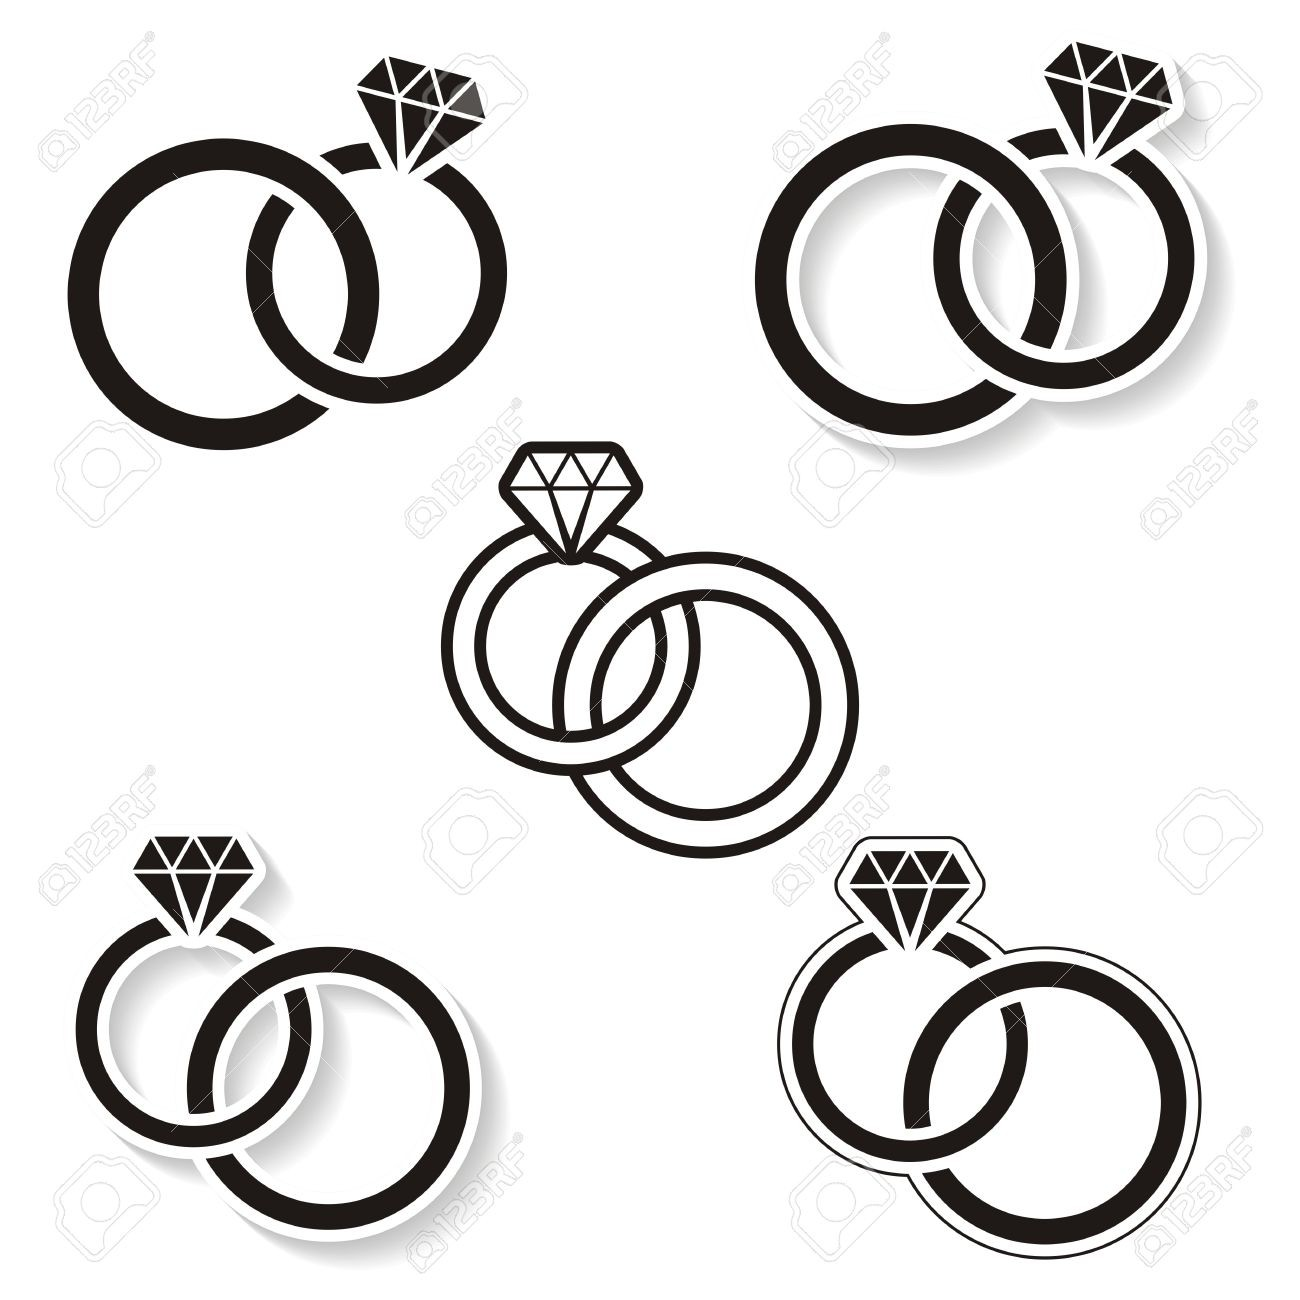 Interlocking wedding ring clipart clipart royalty free download Interlocking Wedding Rings Drawing at PaintingValley.com | Explore ... clipart royalty free download